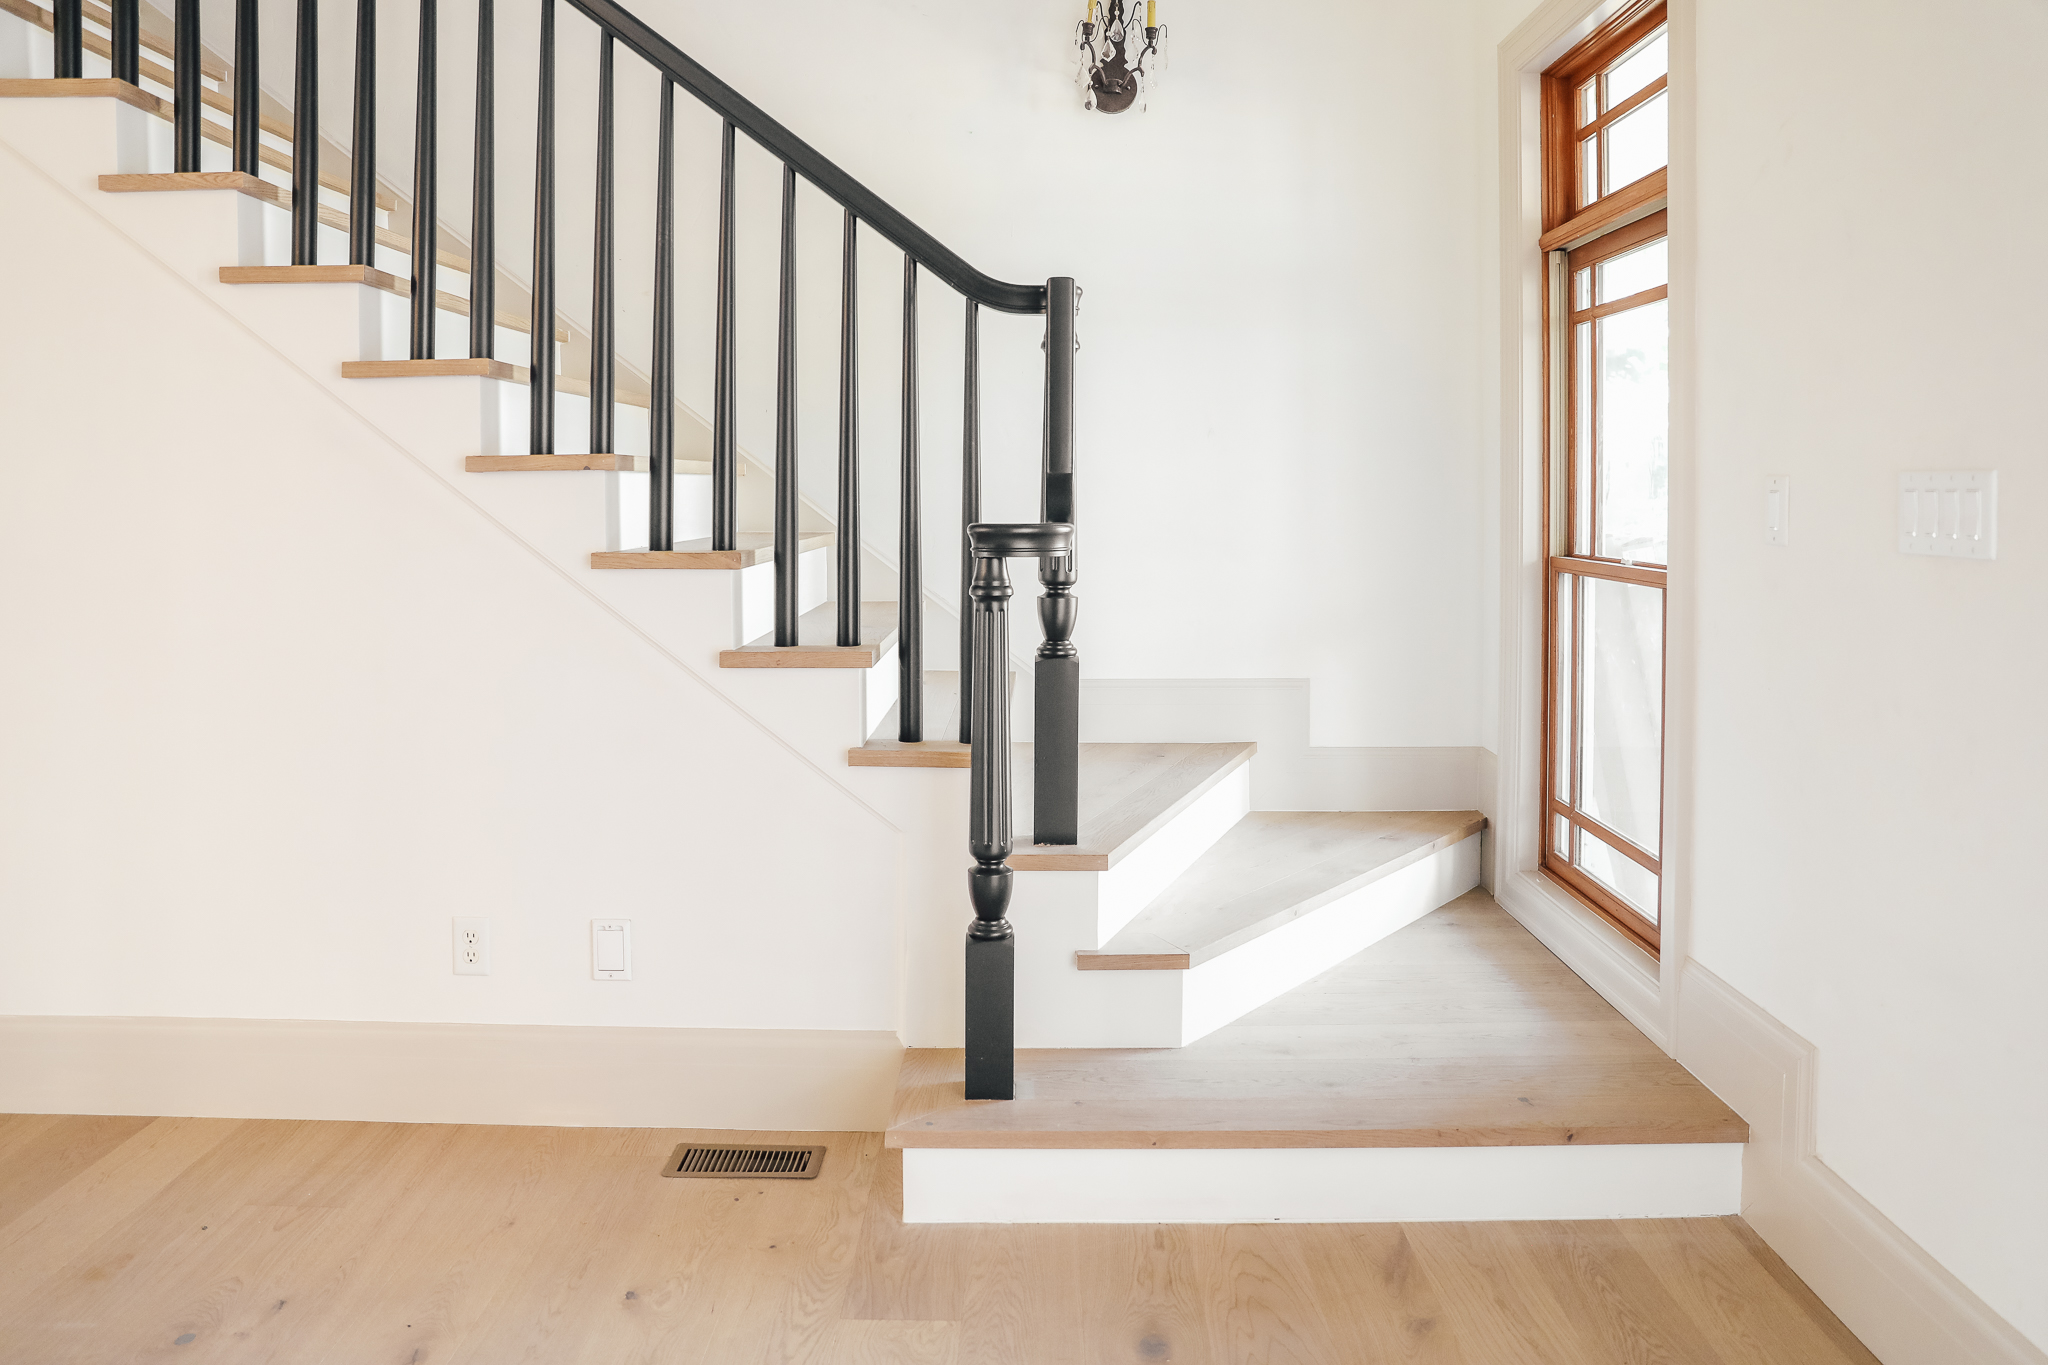 All about The New Wood Flooring throughout Our House   Chris ...